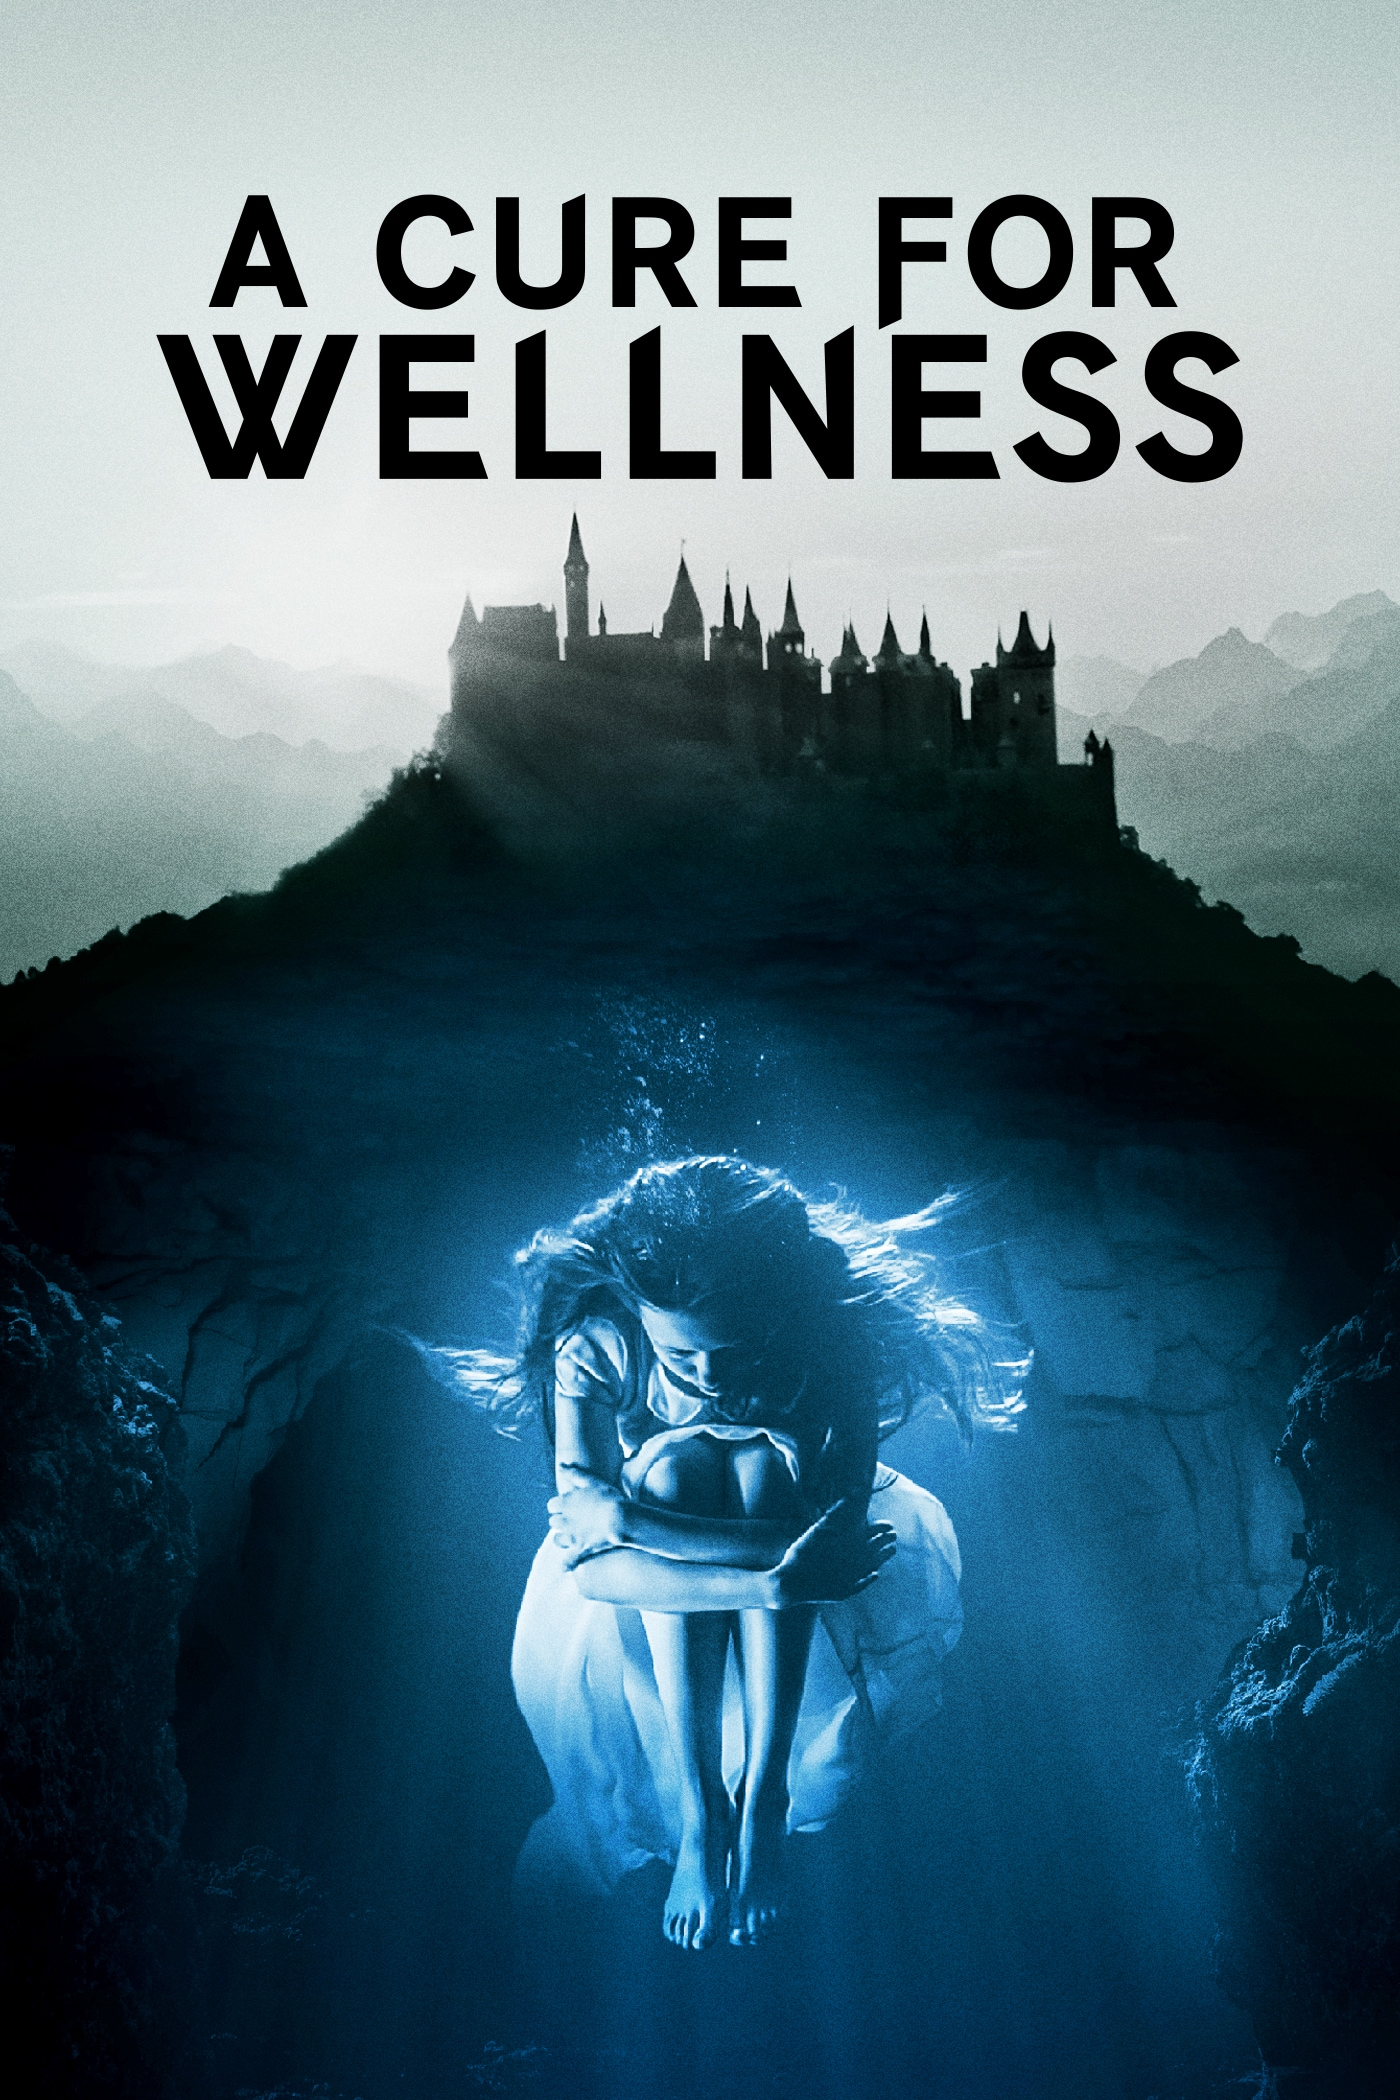 A Cure For Wellness movie poster